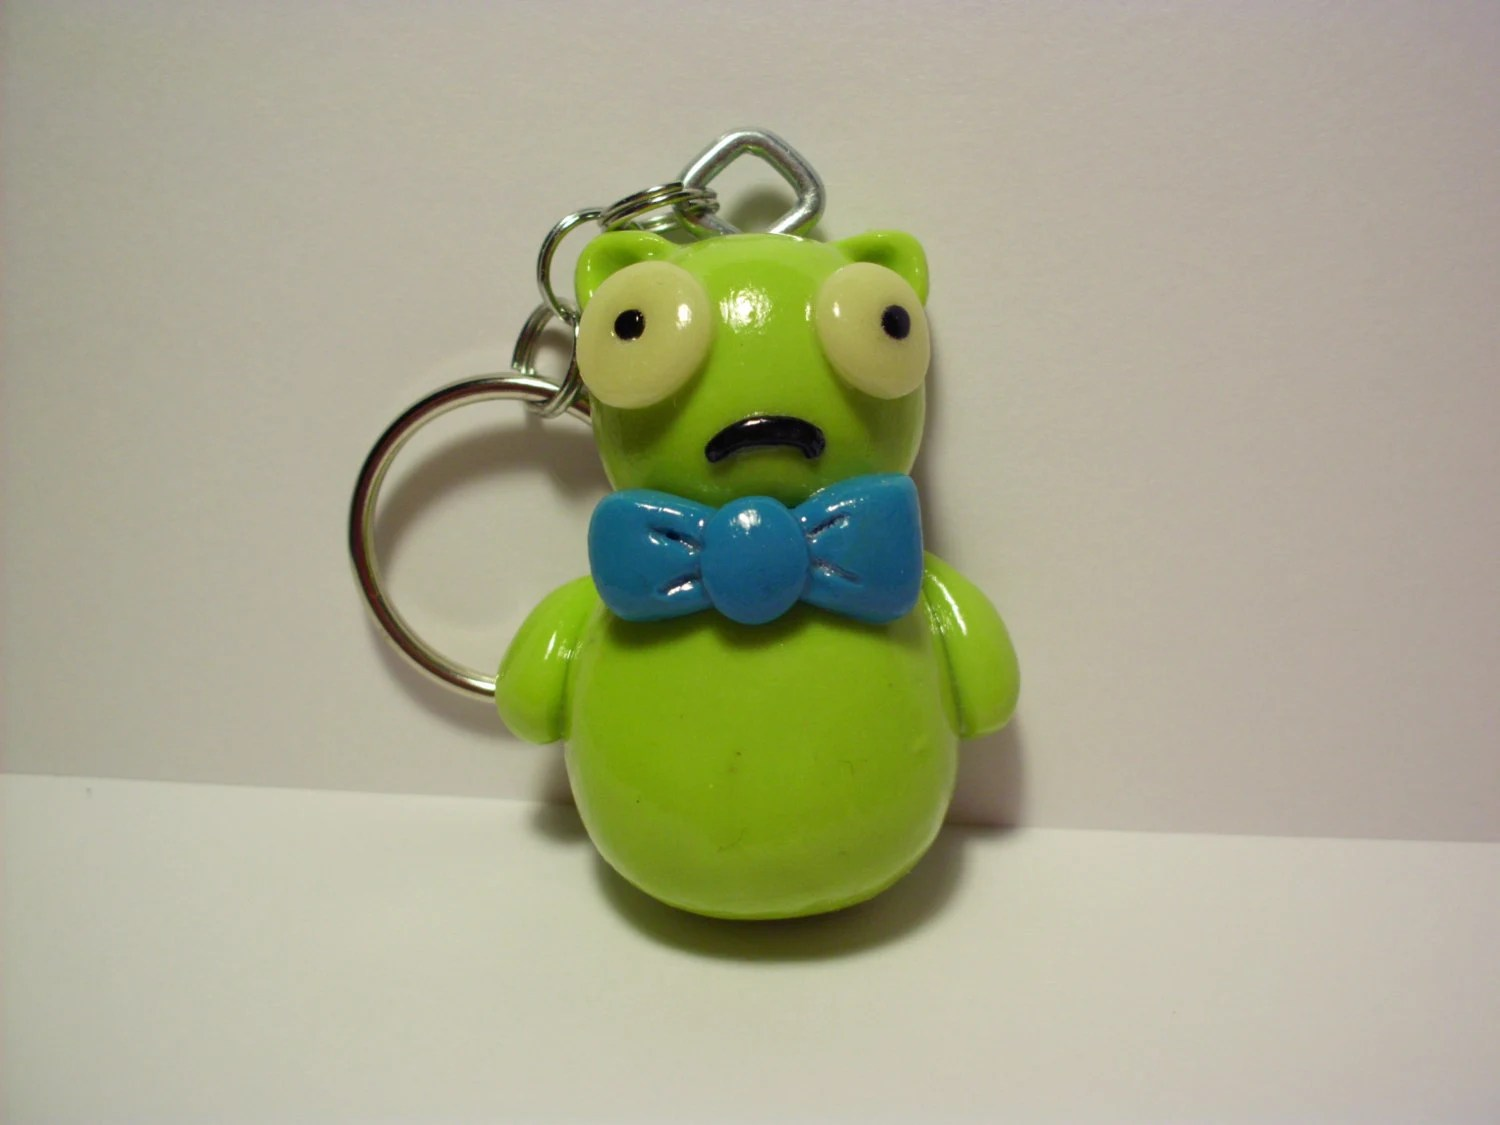 Kuchi Kopi Night Light Ikea Kuchi Kopi Key Chain / Glow In The Dark Eyes/ Green By